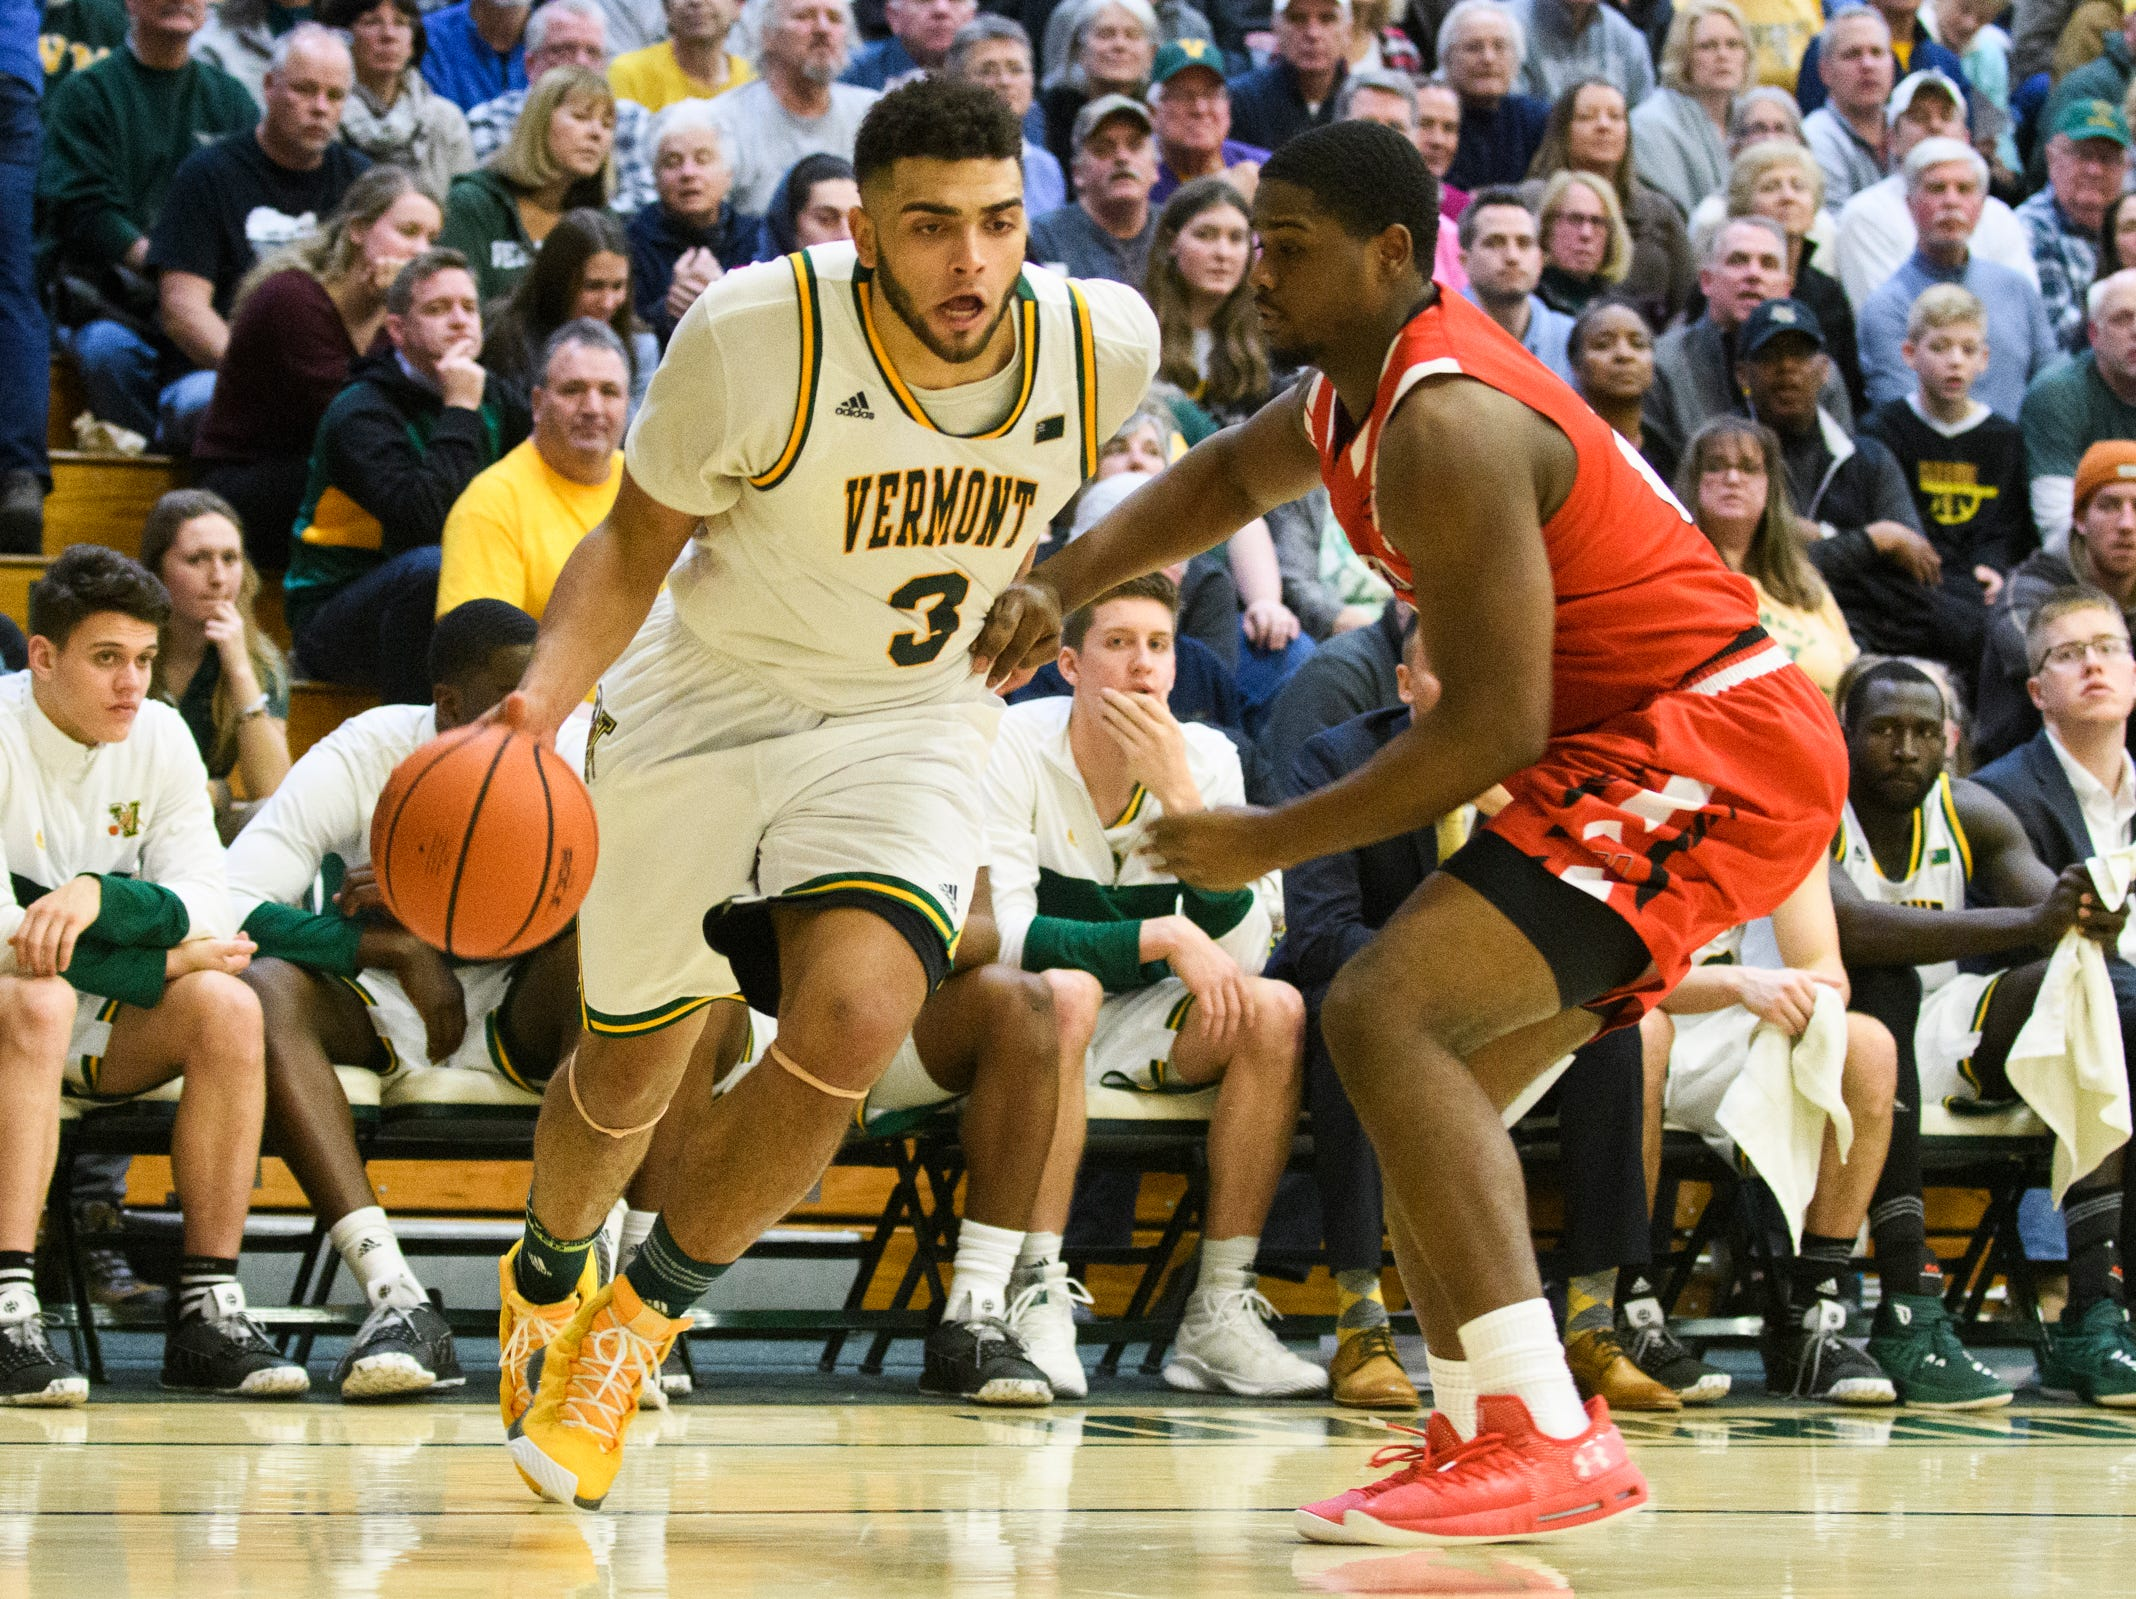 Vermont forward Anthony Lamb (3) drives to the hoop  during the men's basketball game between the Hartford Hawks and the Vermont Catamounts at Patrick Gym on Saturday night January 12, 2019 in Burlington.